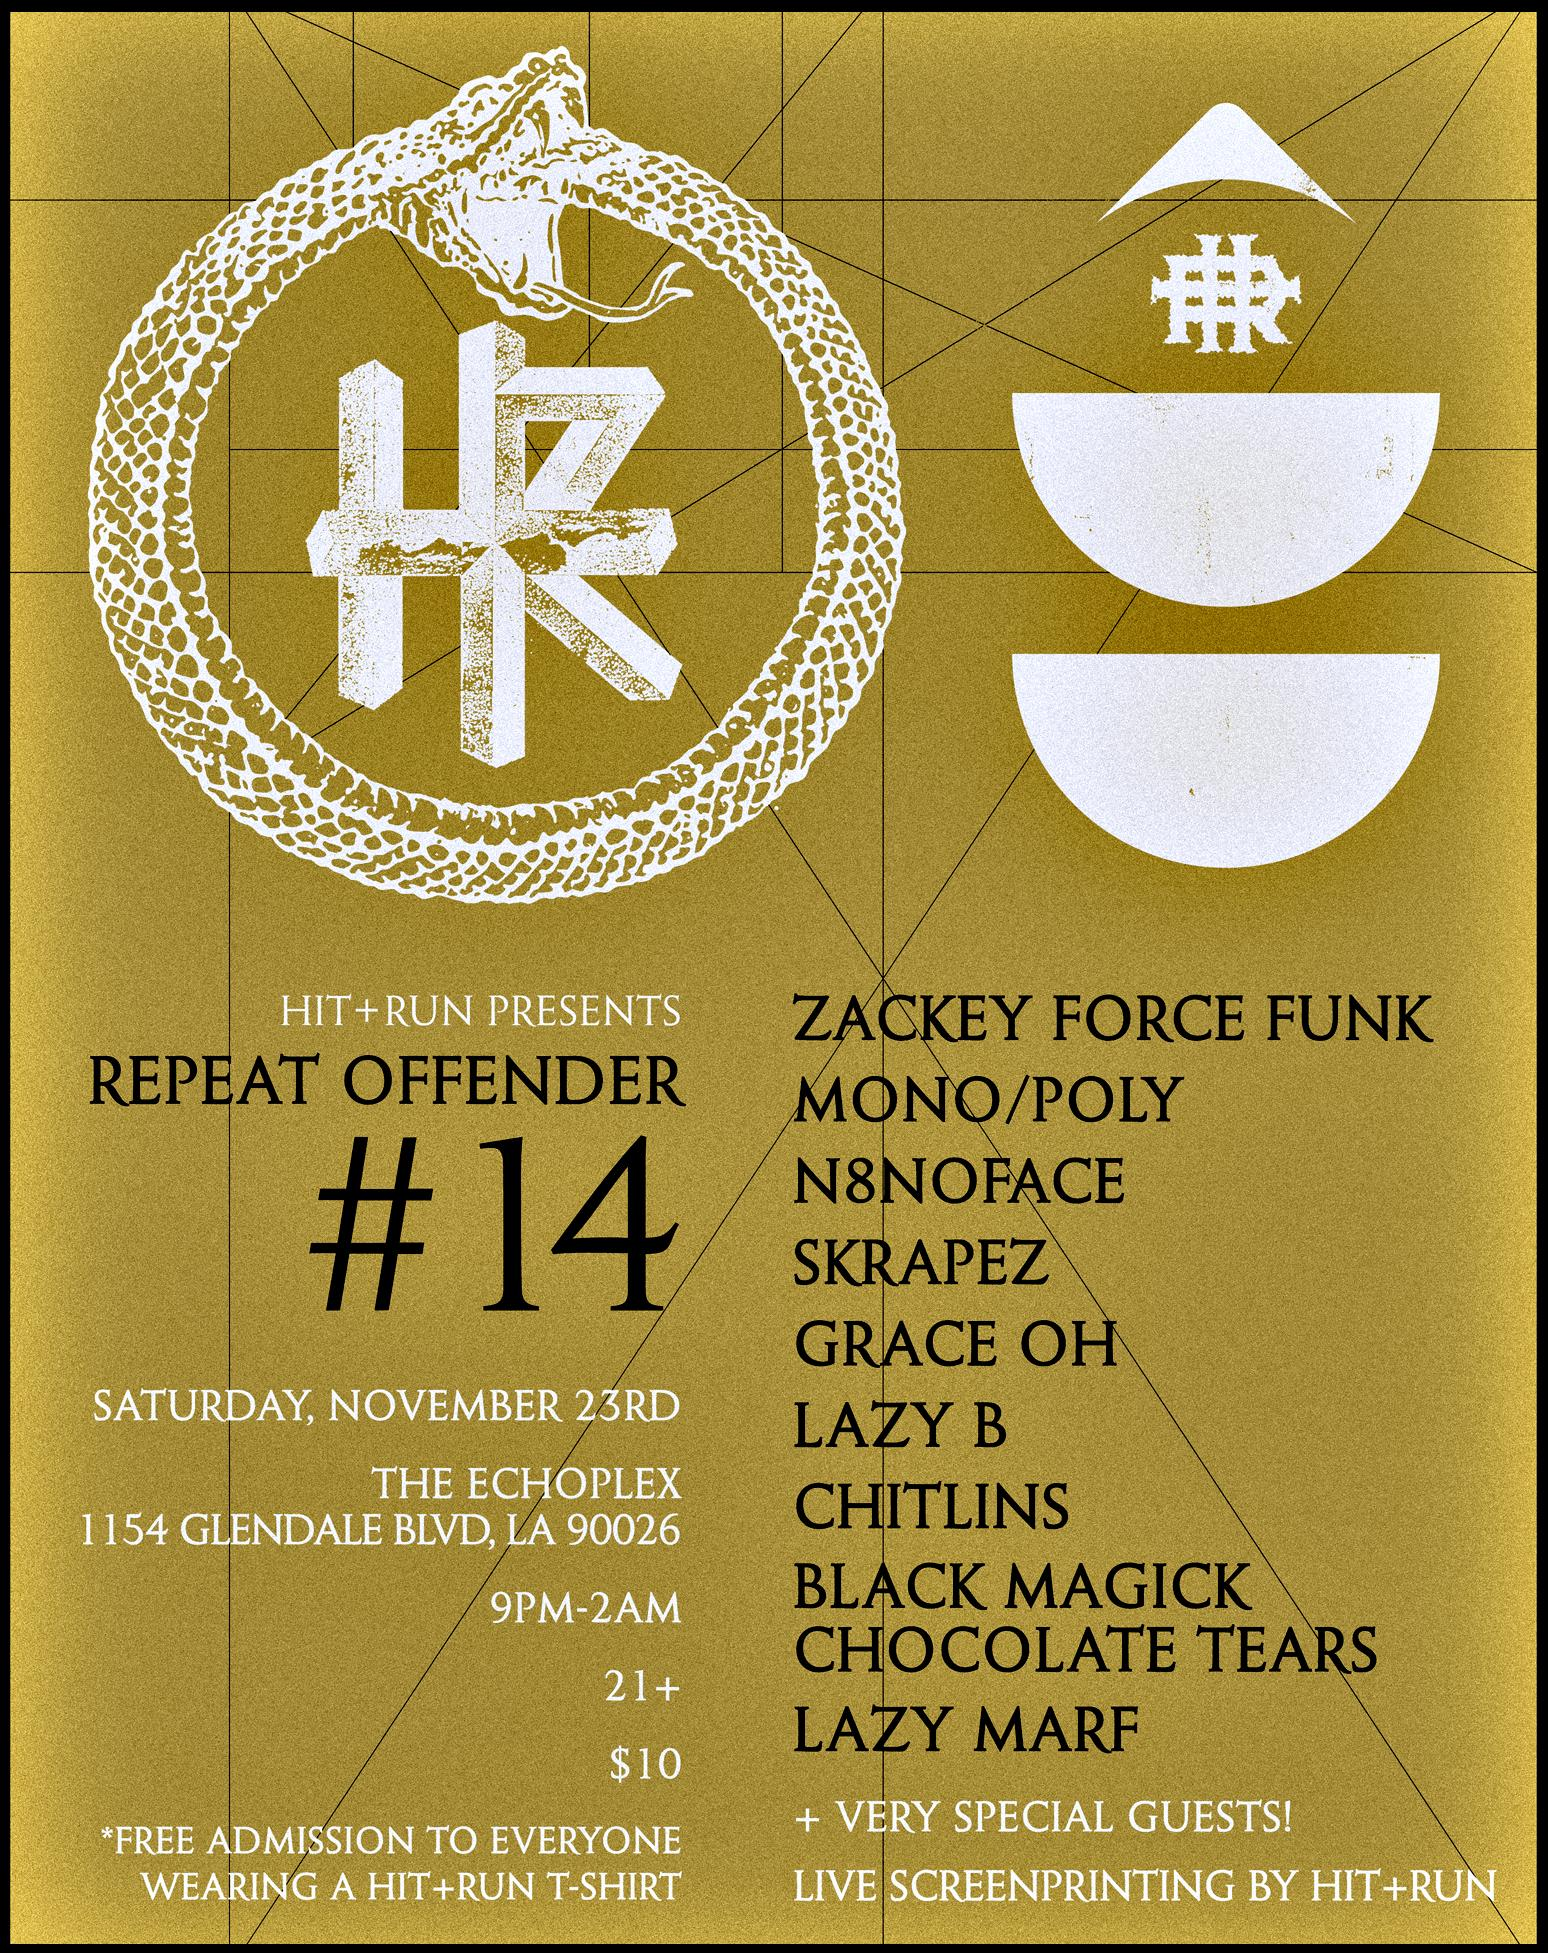 Repeat Offender #14 with Zackey Force Funk and Mono/Poly